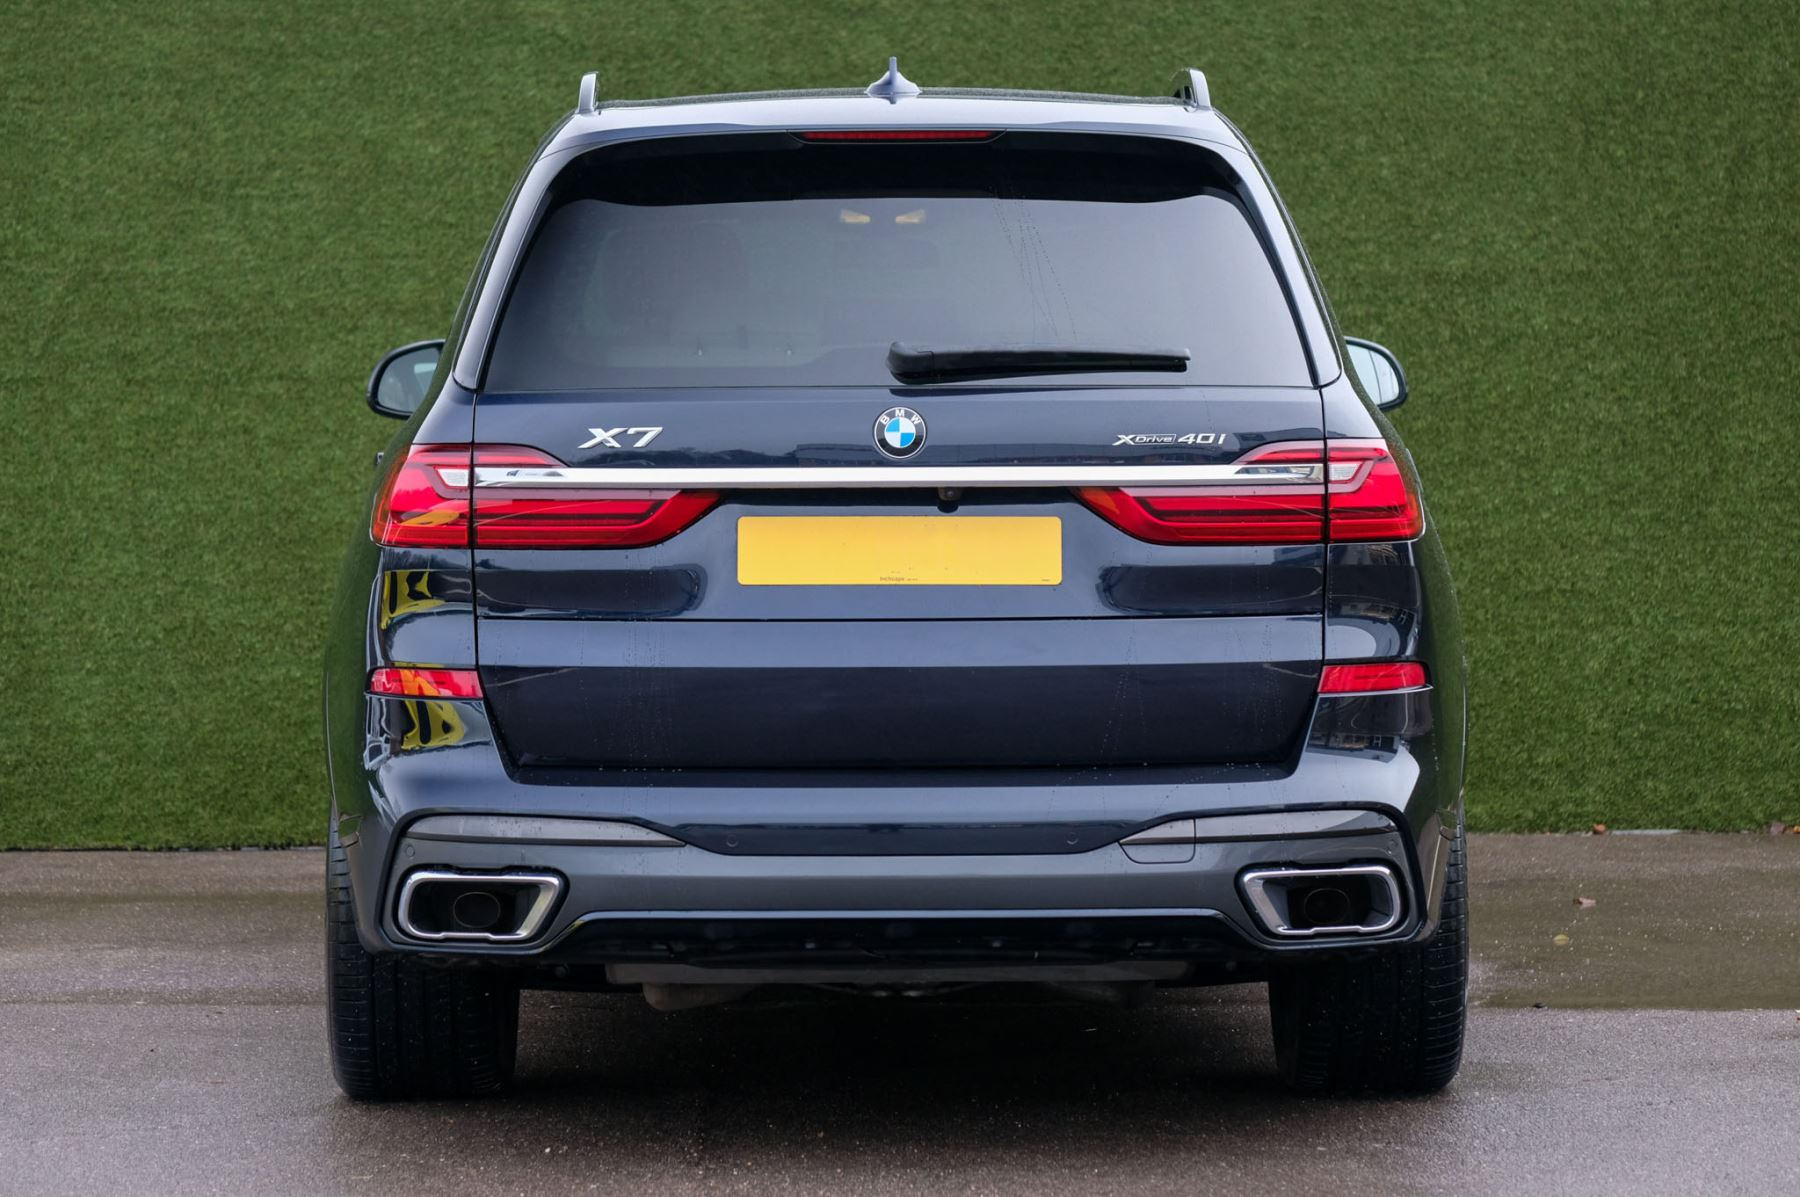 BMW X7 xDrive40i M Sport 5dr Step - Head up Display - M Sport exhaust system image 10